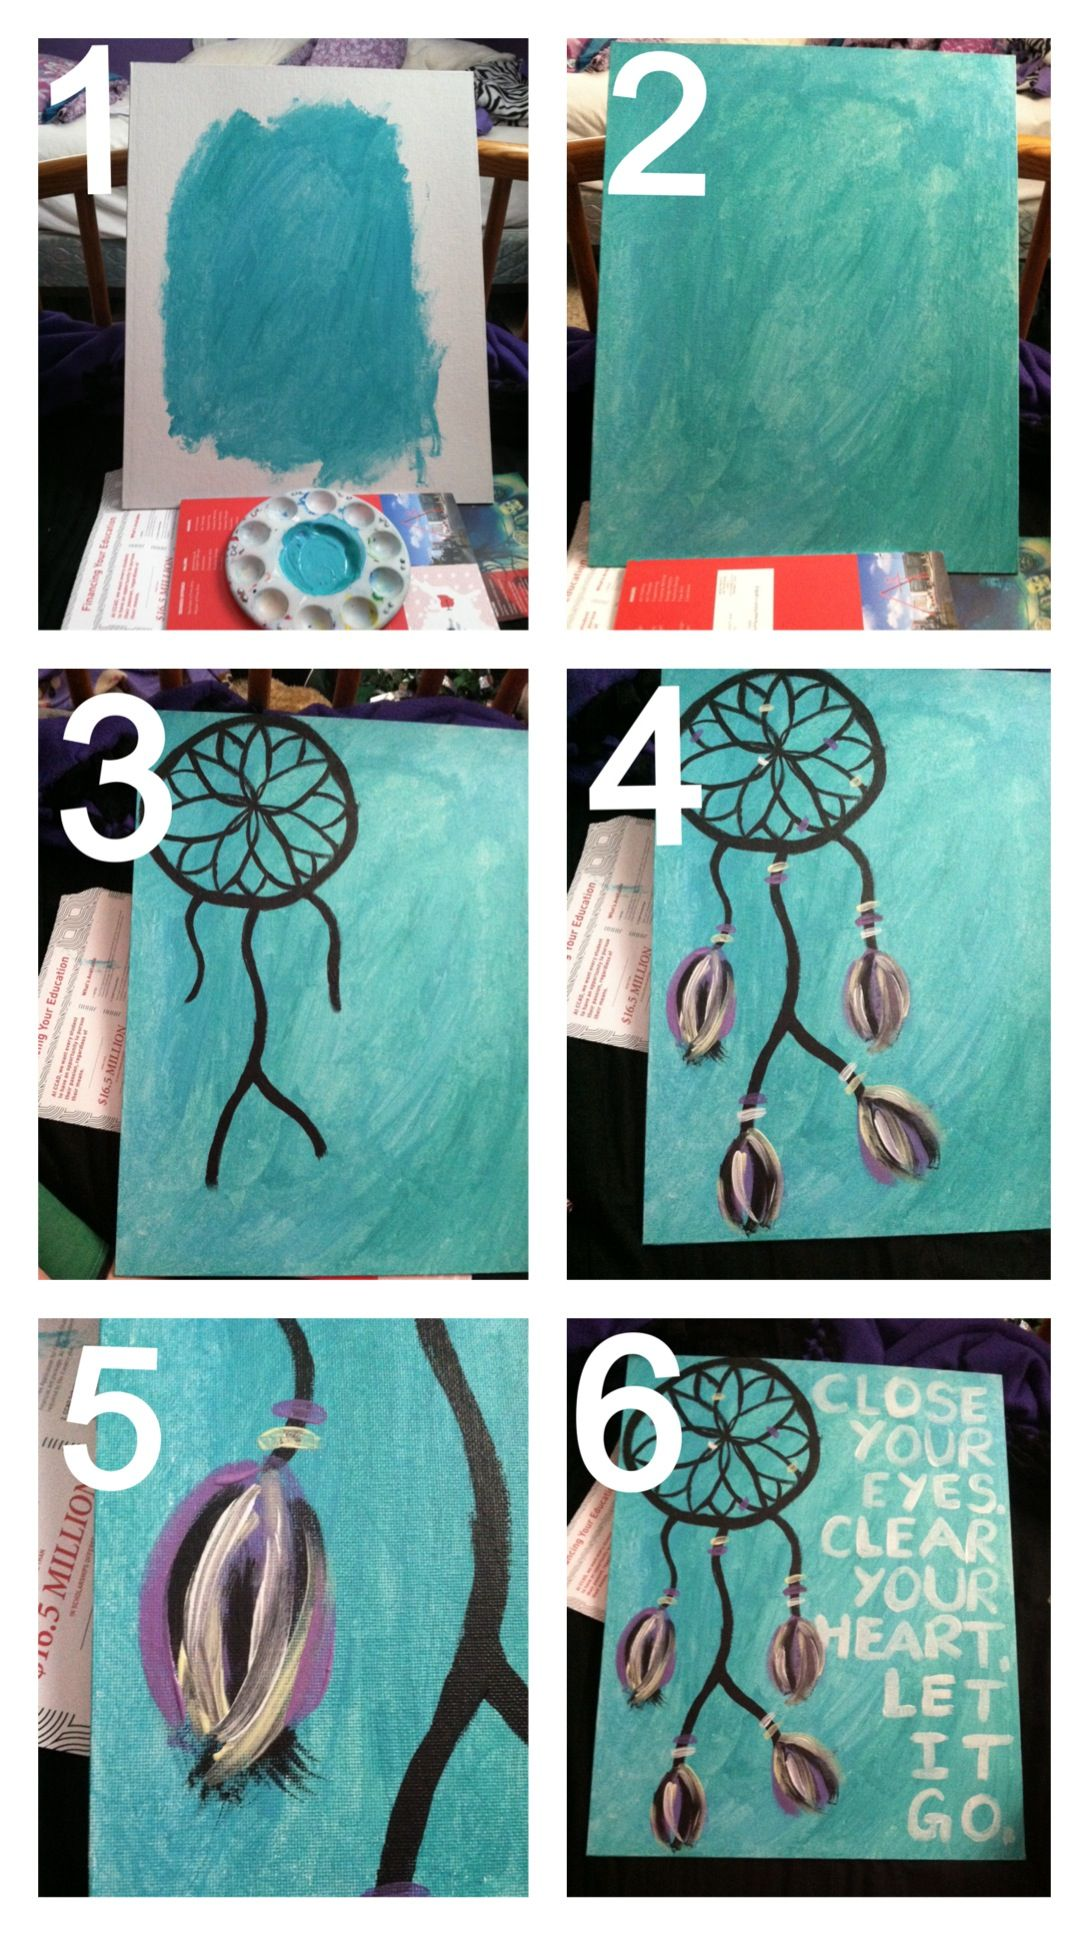 Walmart Dream Catcher Brilliant Diy Dream Catcher Paintingpaints $10 Walmart Canvas 3 For $12 Design Ideas